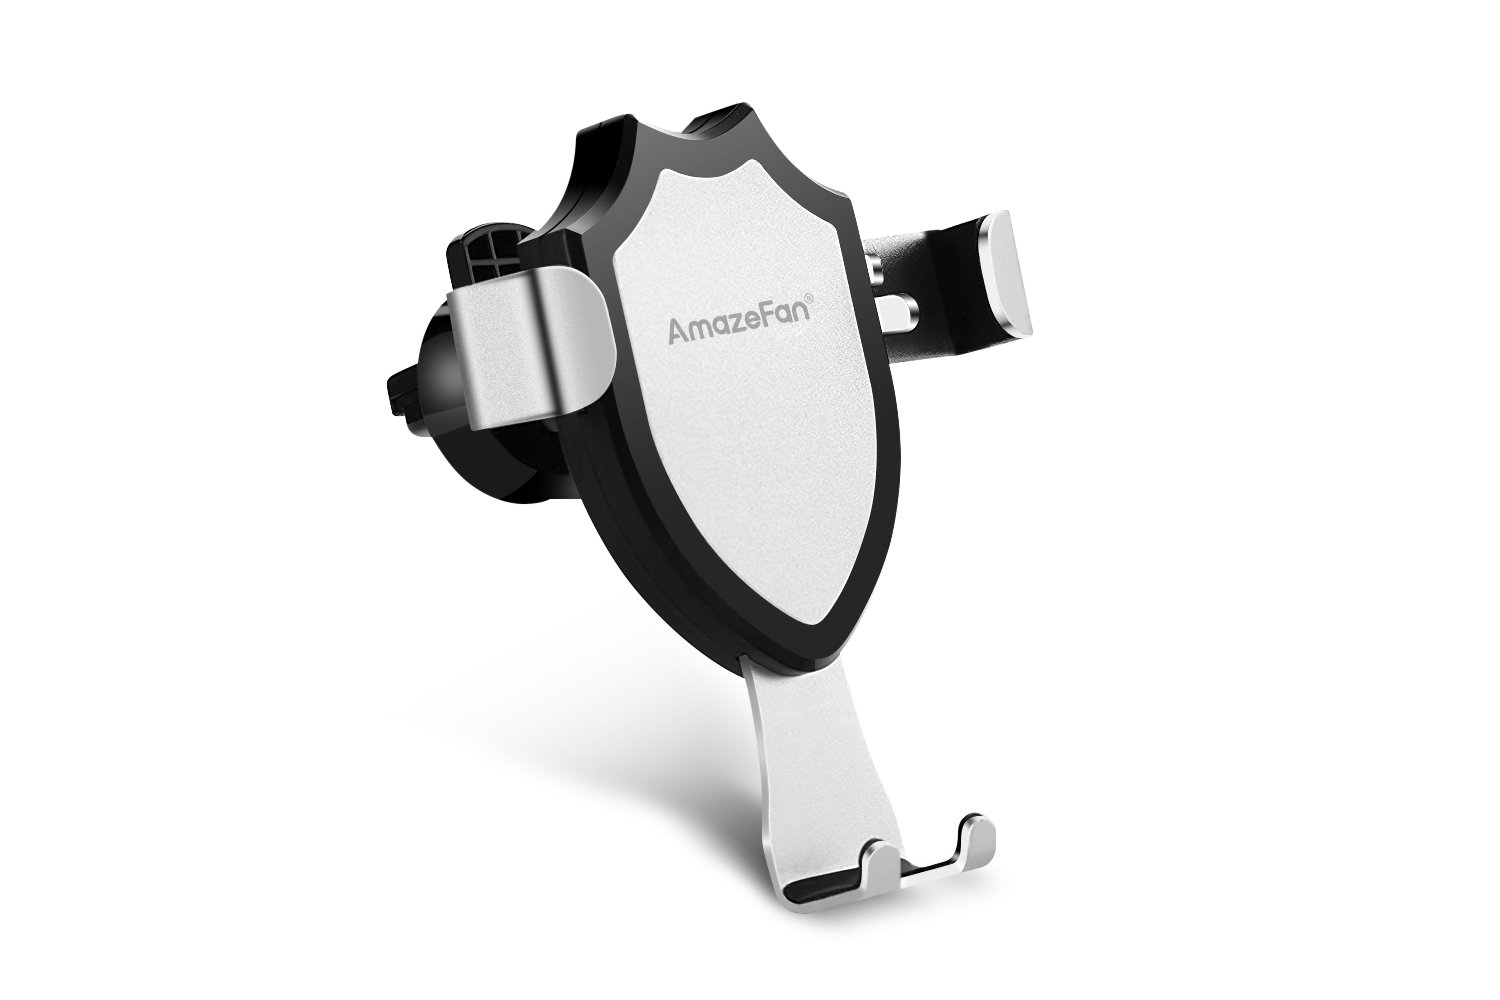 Standard Holder for iPhone Car Mount Holder AmazeFan Phone Holder for Samsung Galaxy S8 S8 Plus S7 S7 Edge S6 Edge Plus Note 5 Silver NbTech 17